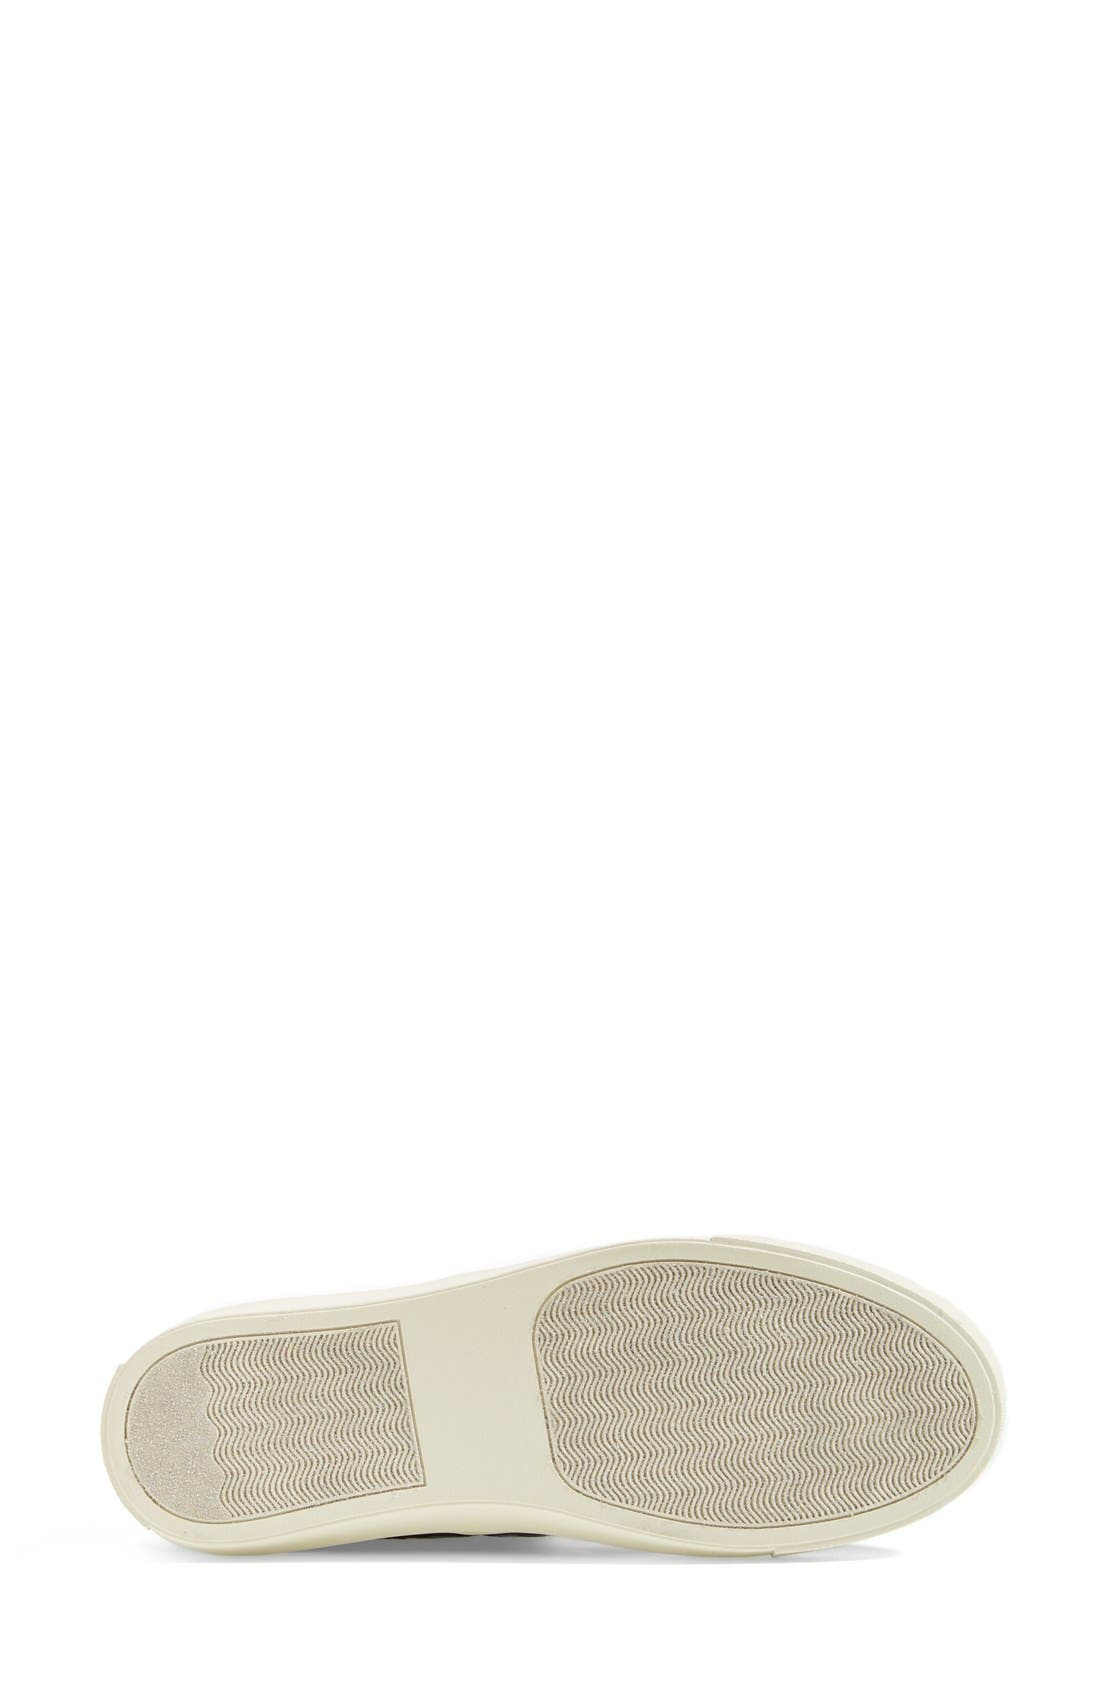 Alternate Image 4  - Steve Madden 'Ecntrc-c' Snake-Embossed Slip-On Sneaker (Women)